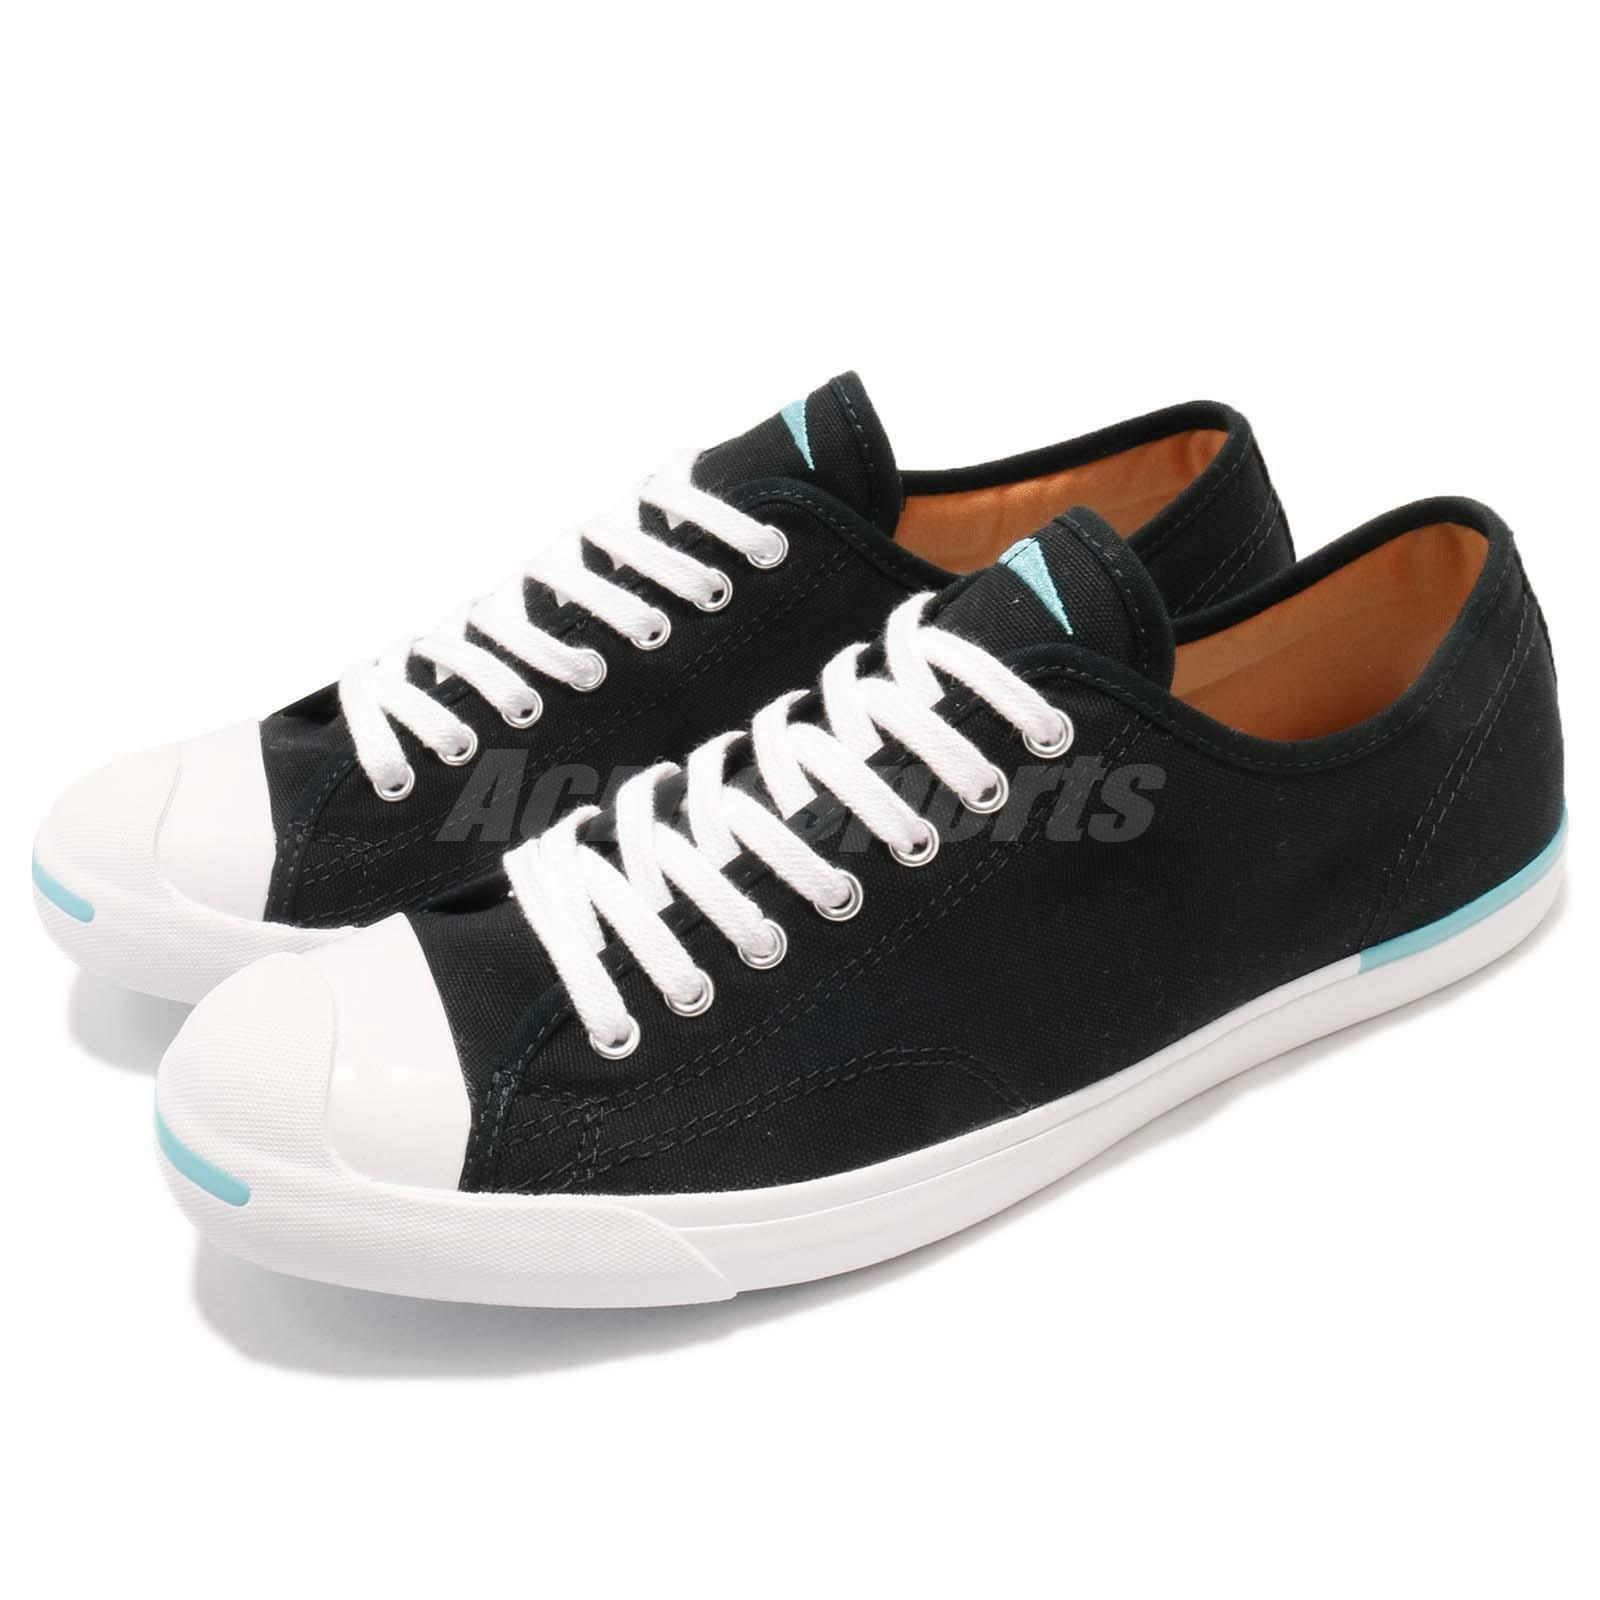 Converse Jack Purcell LP L/S Negro Blanco Lona Hombres Mujeres Mujeres Hombres Informal Zapatos  160815C 2248e2